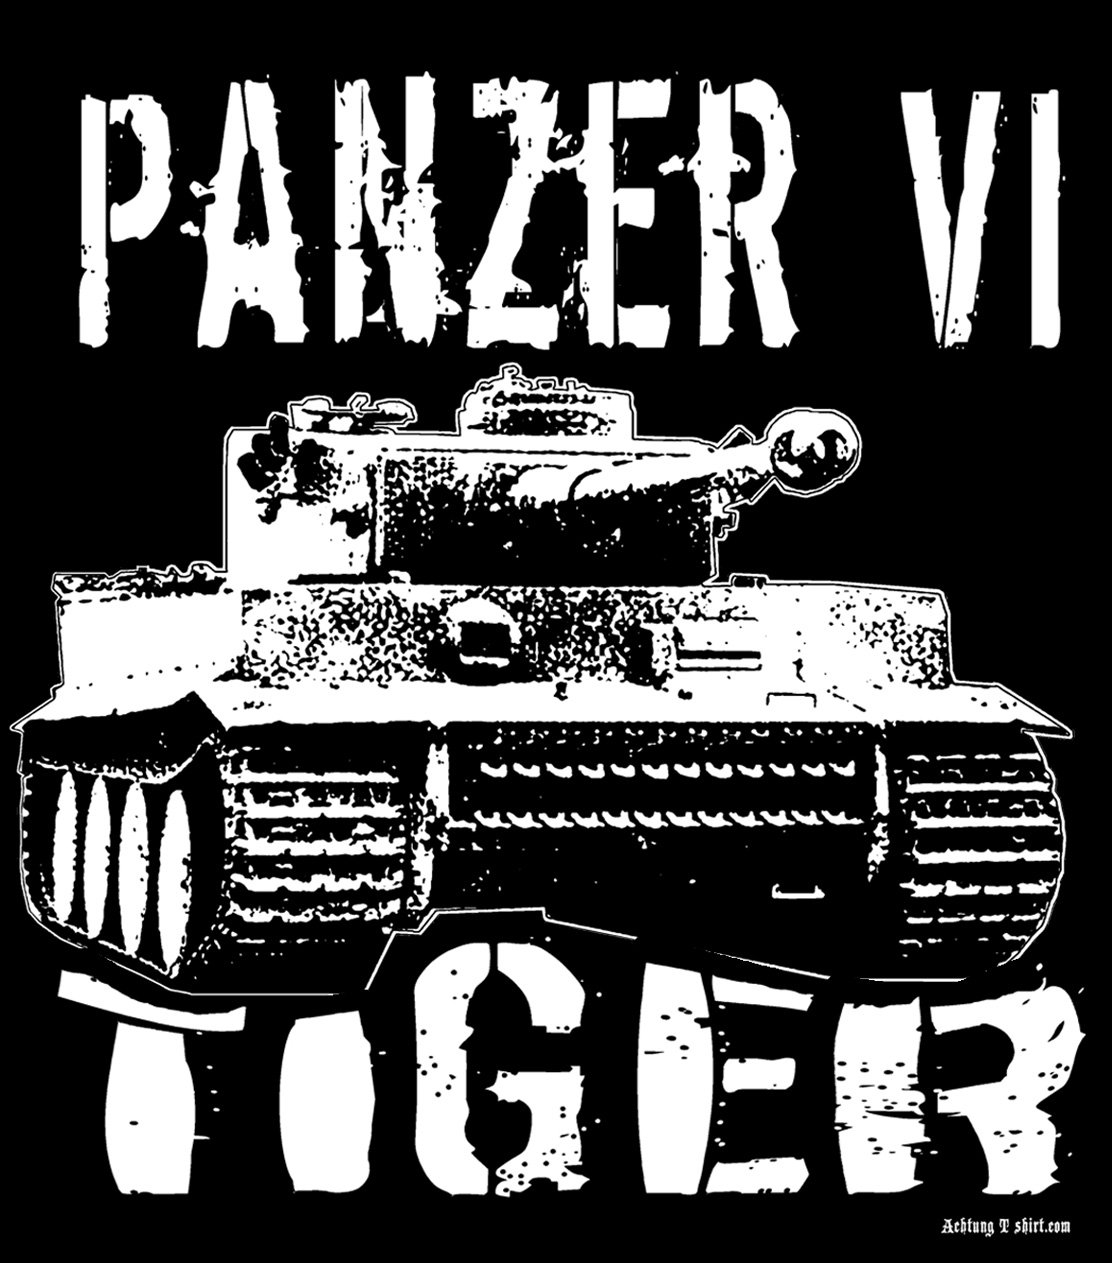 panzer tiger tank ww2 german army kursk battle tee shirt black